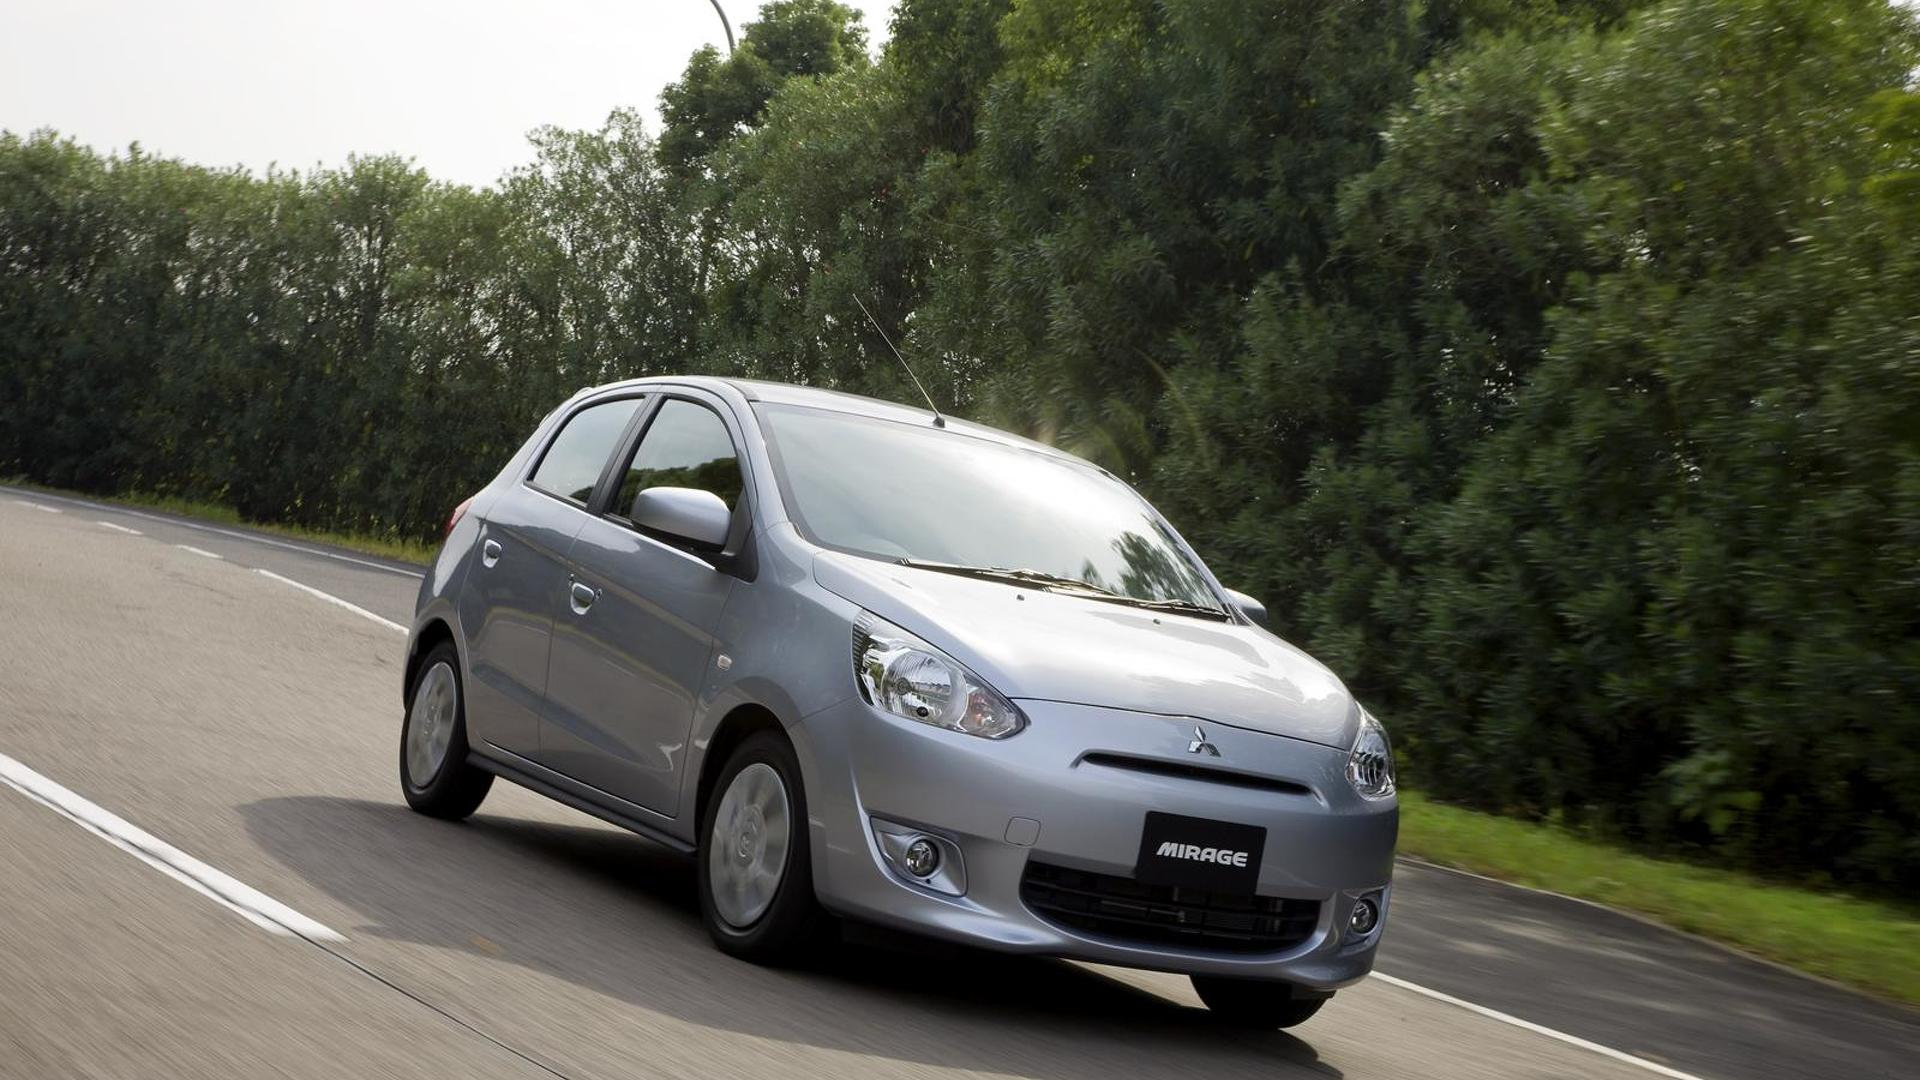 Mitsubishi Mirage headed to the U.S., will eventually be offered as an EV - report